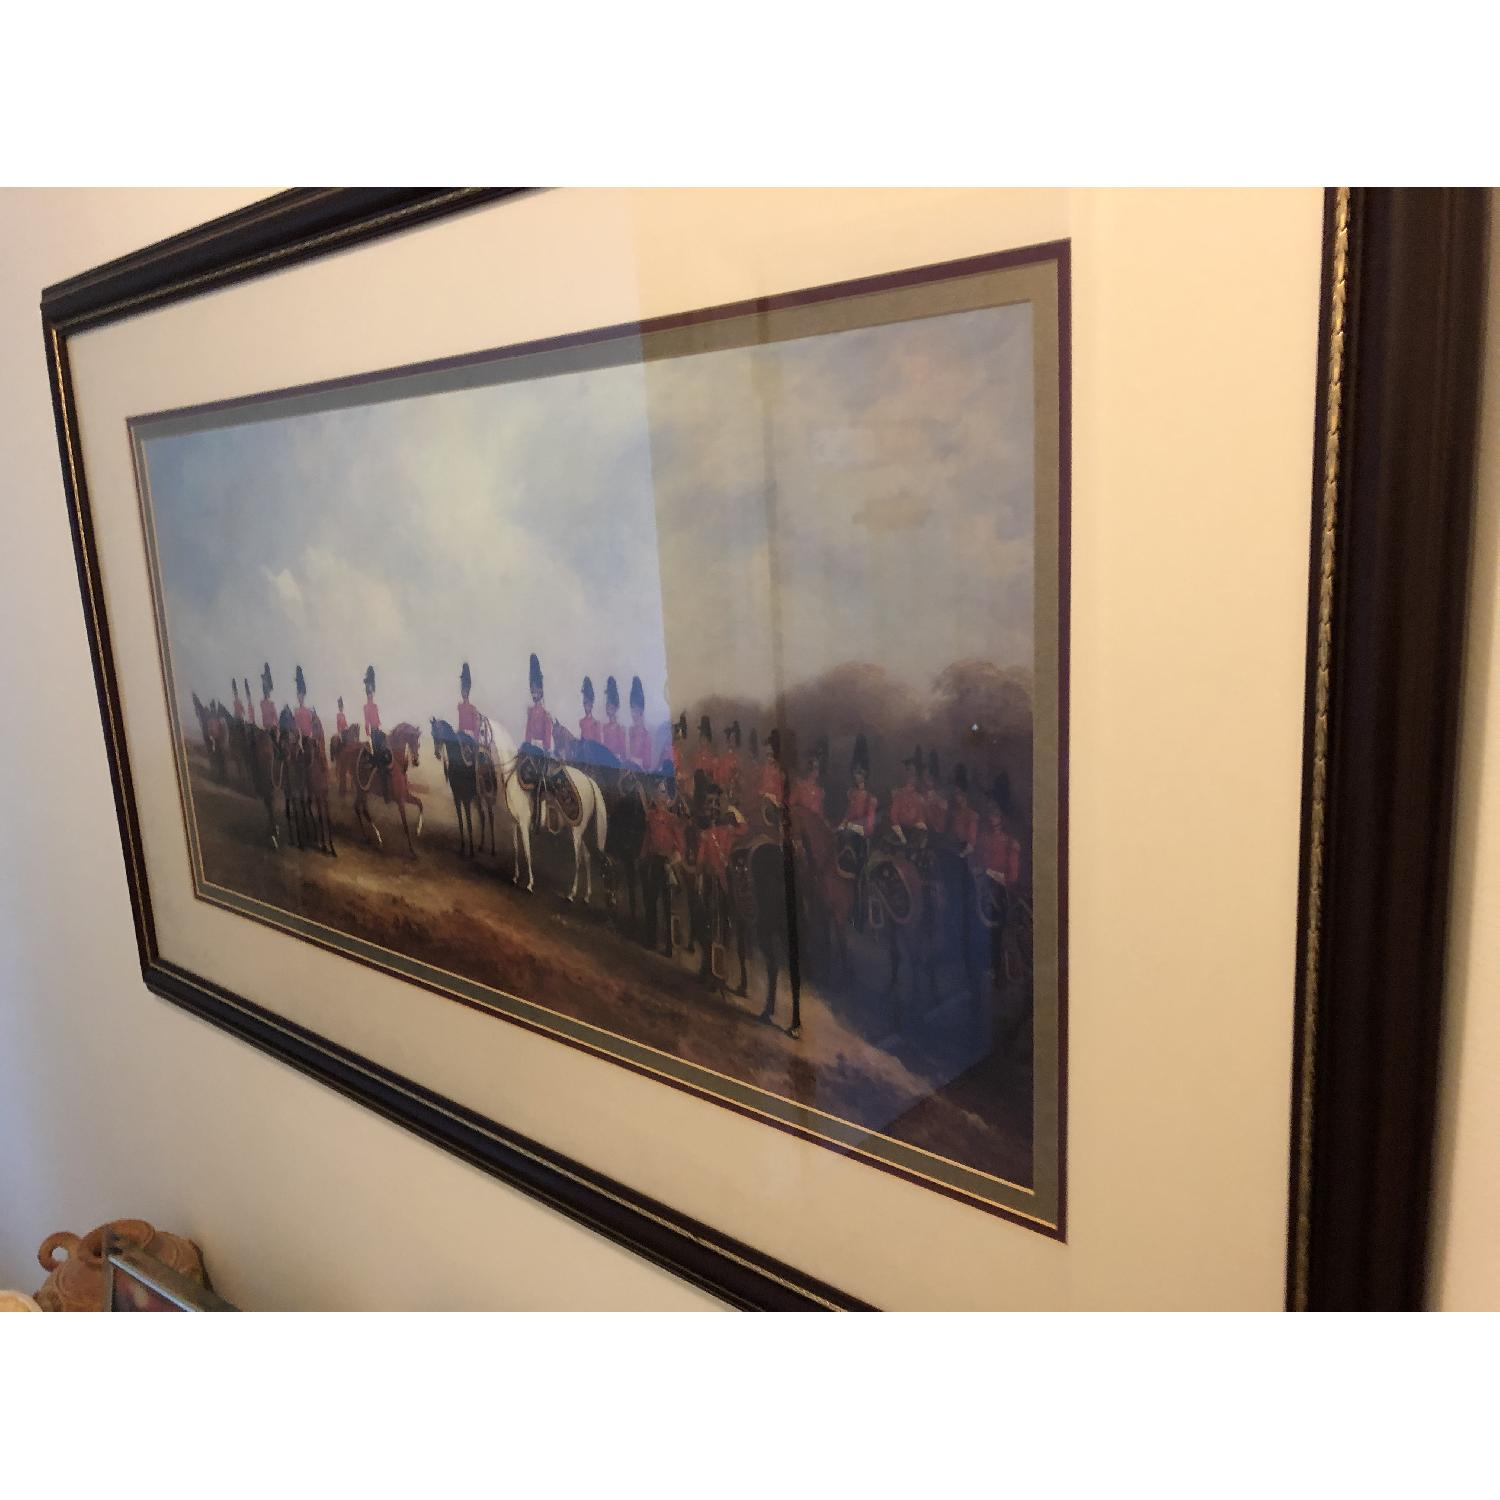 Bombay Co. Framed Print of Cavalry-2